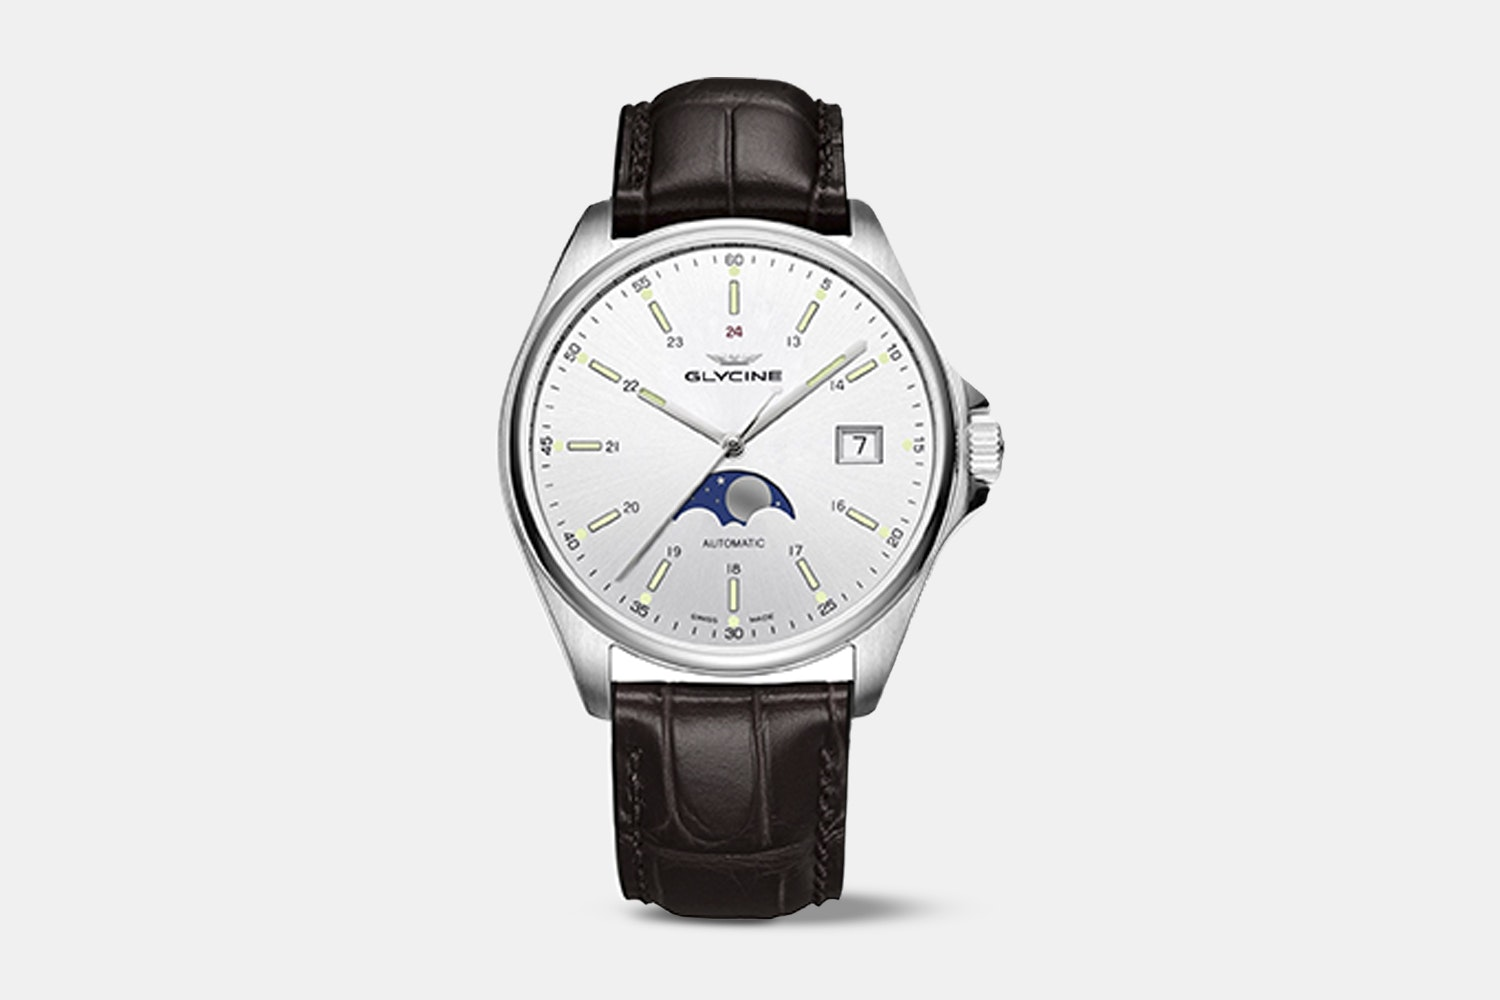 GL0115 | Silver Dial, Brown Leather Strap